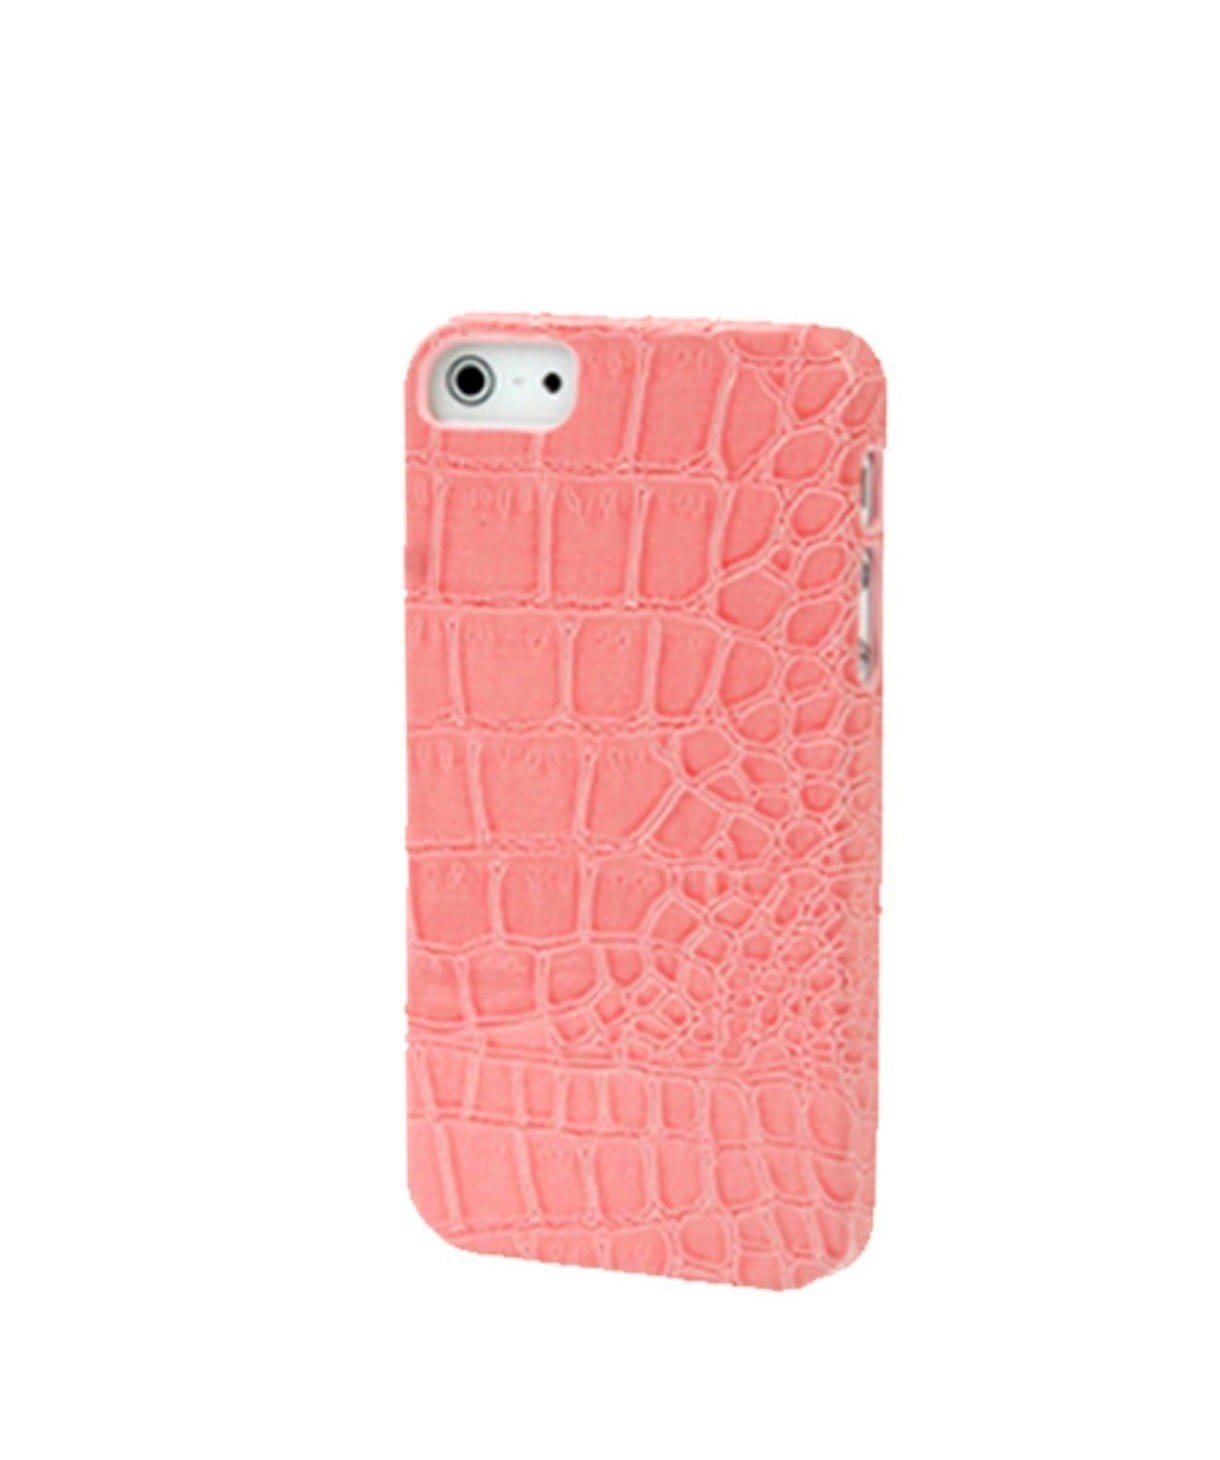 Pink Textured IPhone Cover - Uptownie